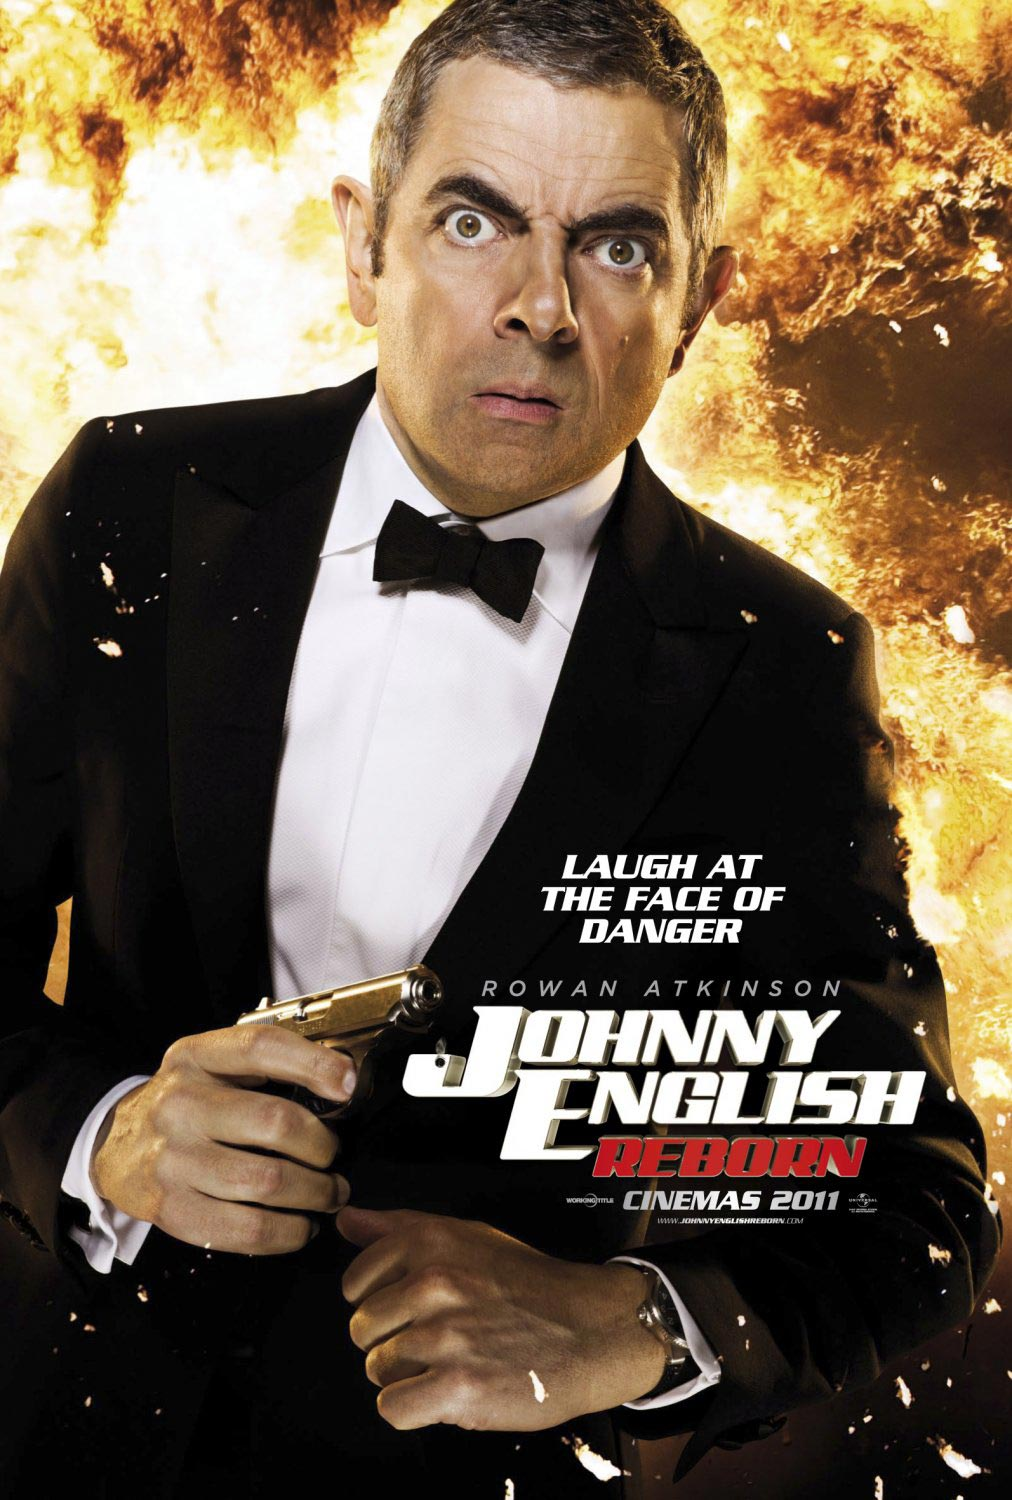 johnny english reborn ndash-#16